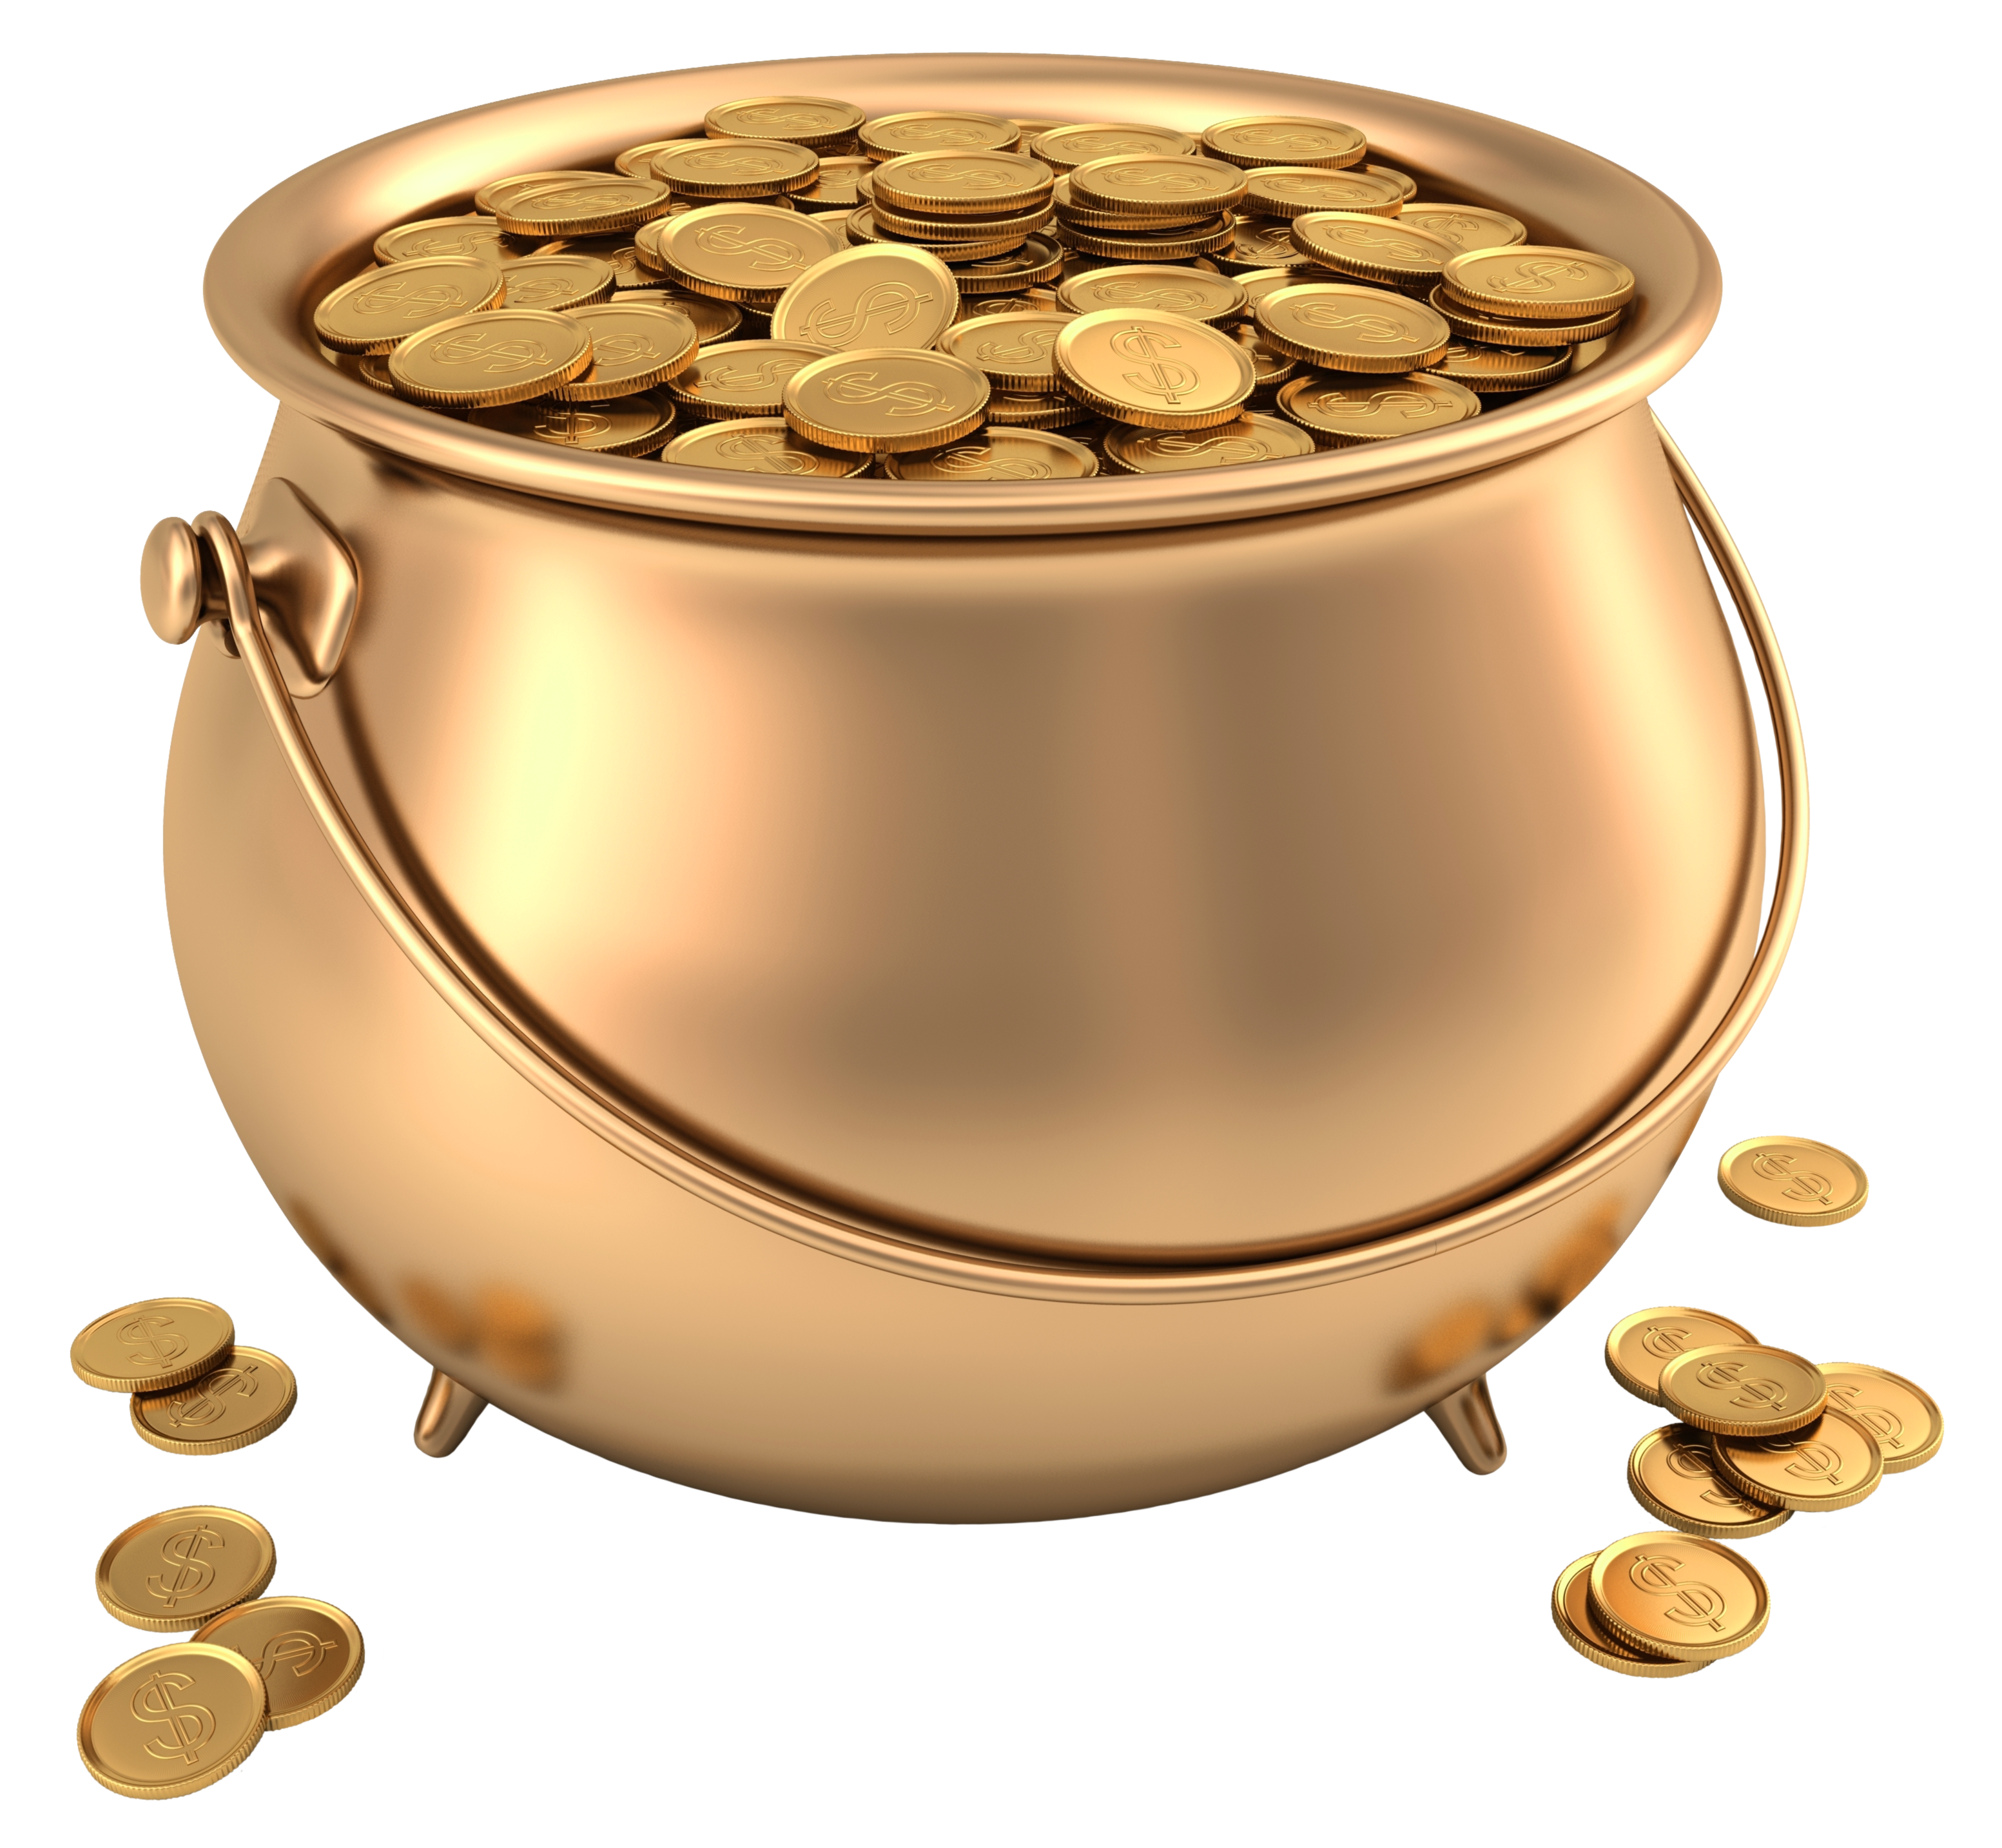 Money pot clipart banner free download Pot of Gold PNG Picture Clipart | Gallery Yopriceville - High ... banner free download